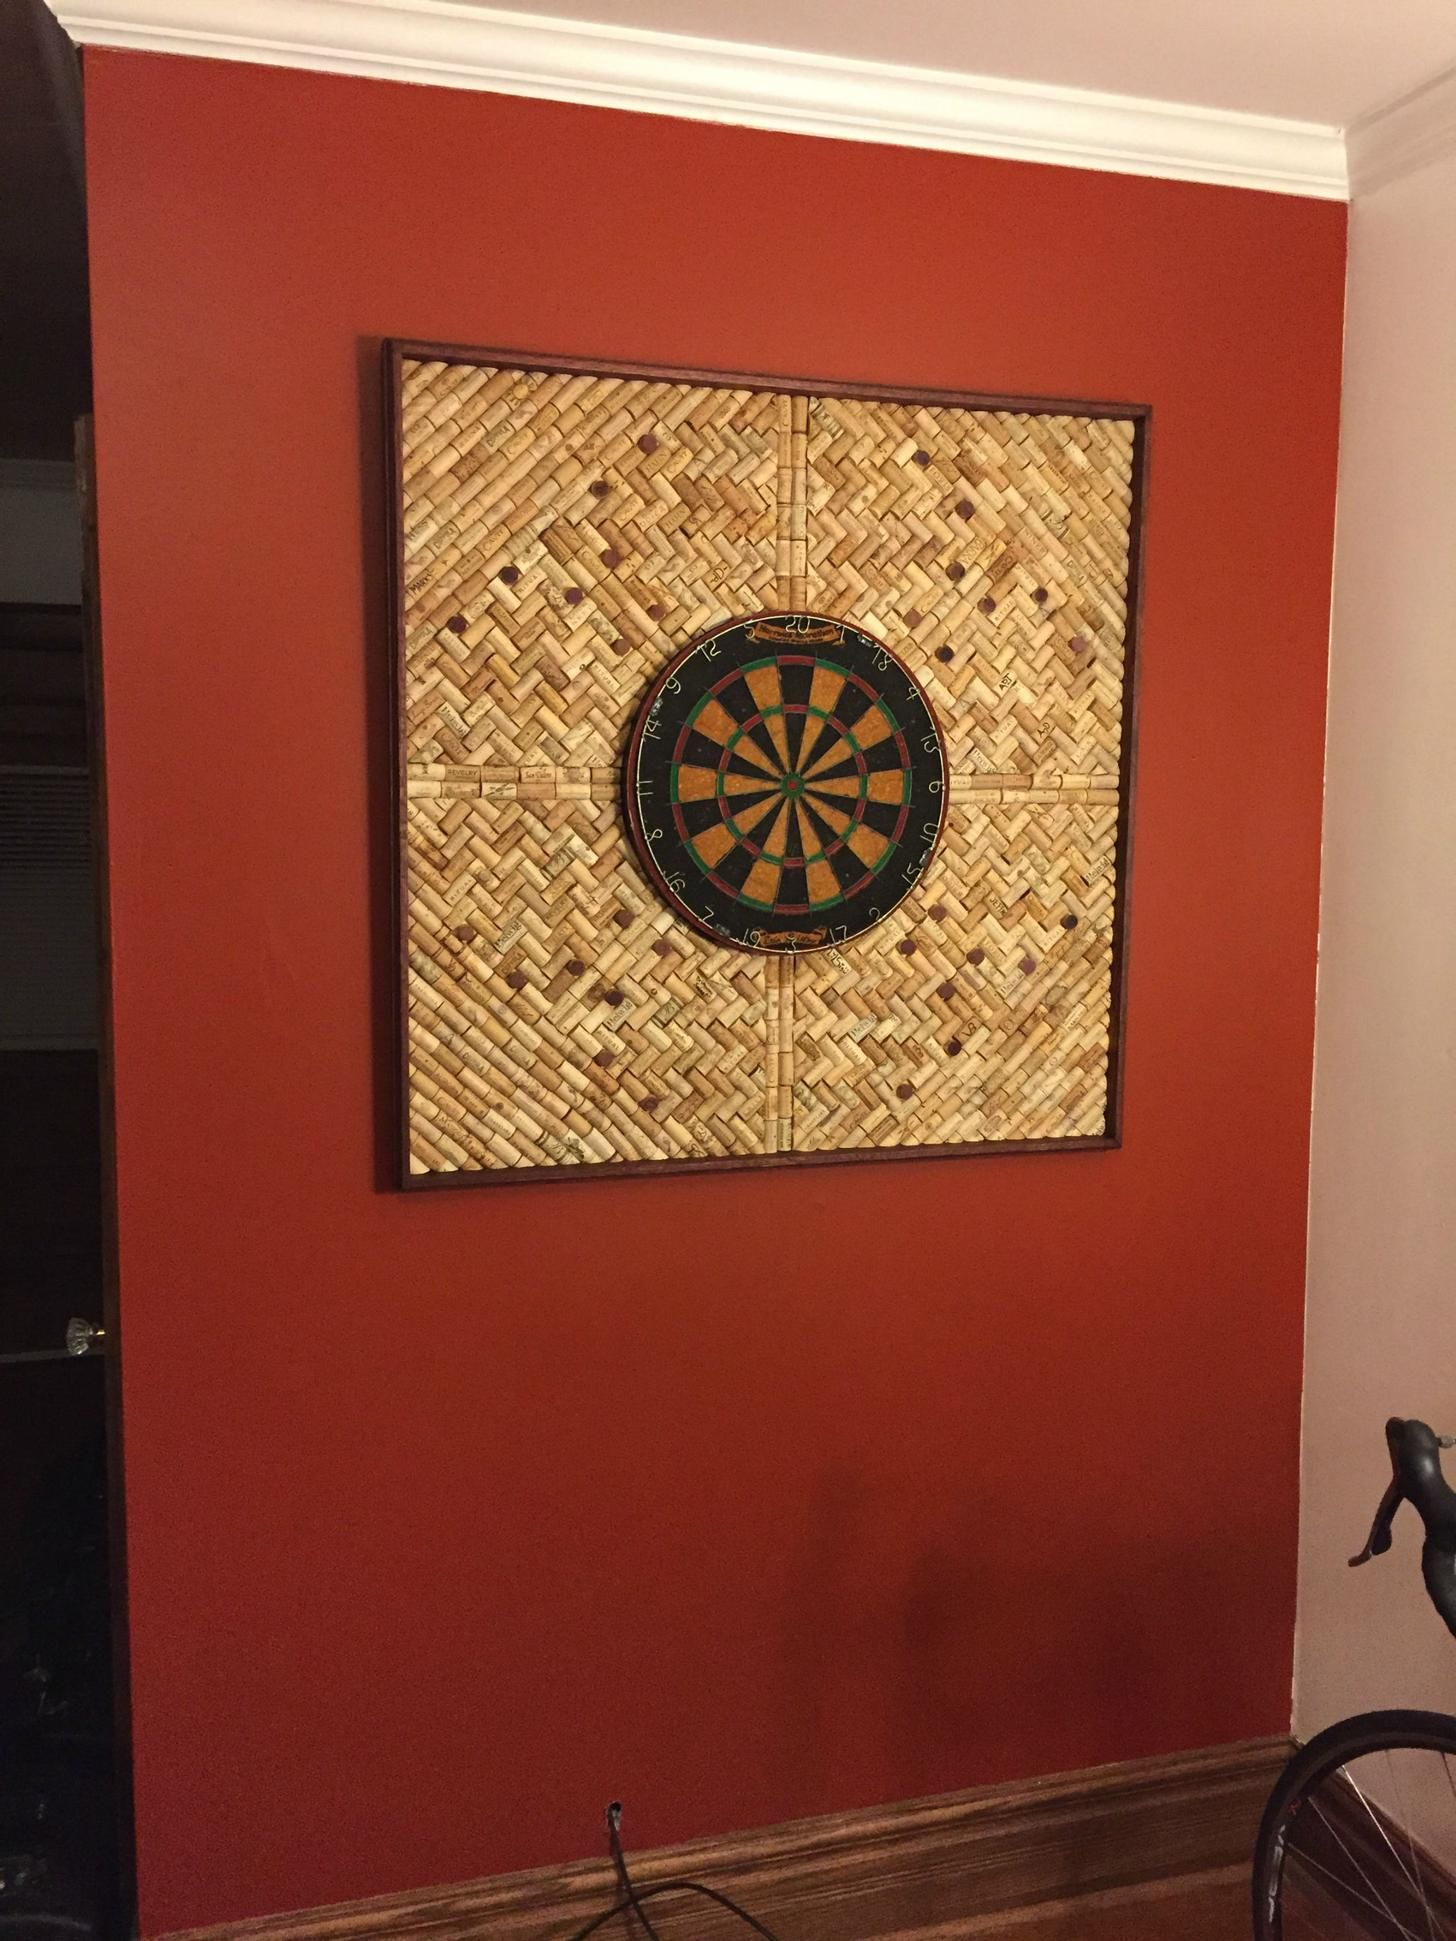 Diy Wine Cork Backed Dartboard Wine Cork Diy Wine Cork Crafts Wine Cork Projects